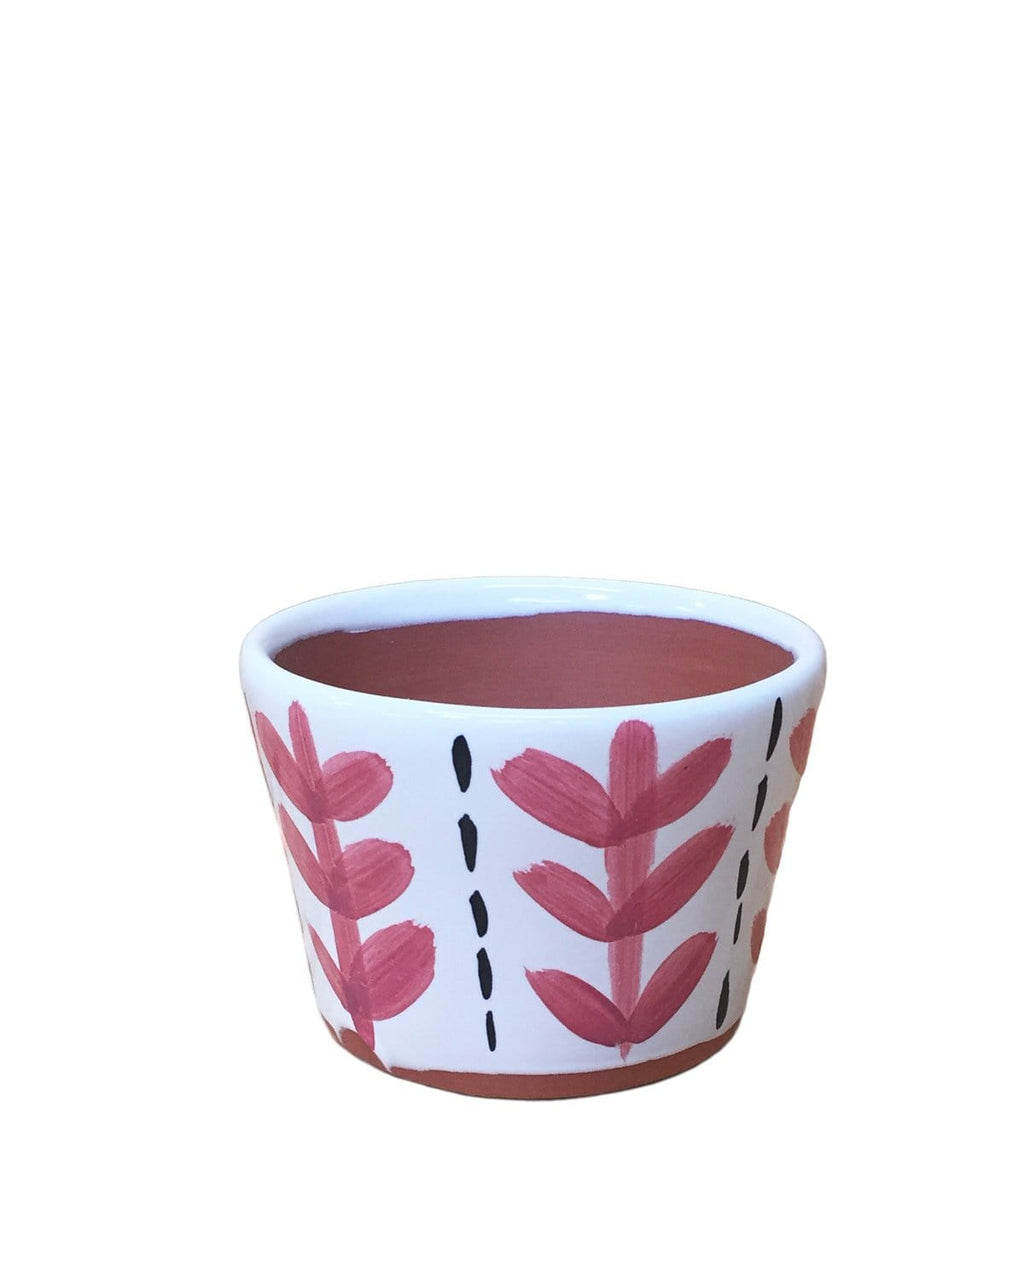 "Clove: Leaf Hand Painted Pot 3.5""H x 4.5""D"